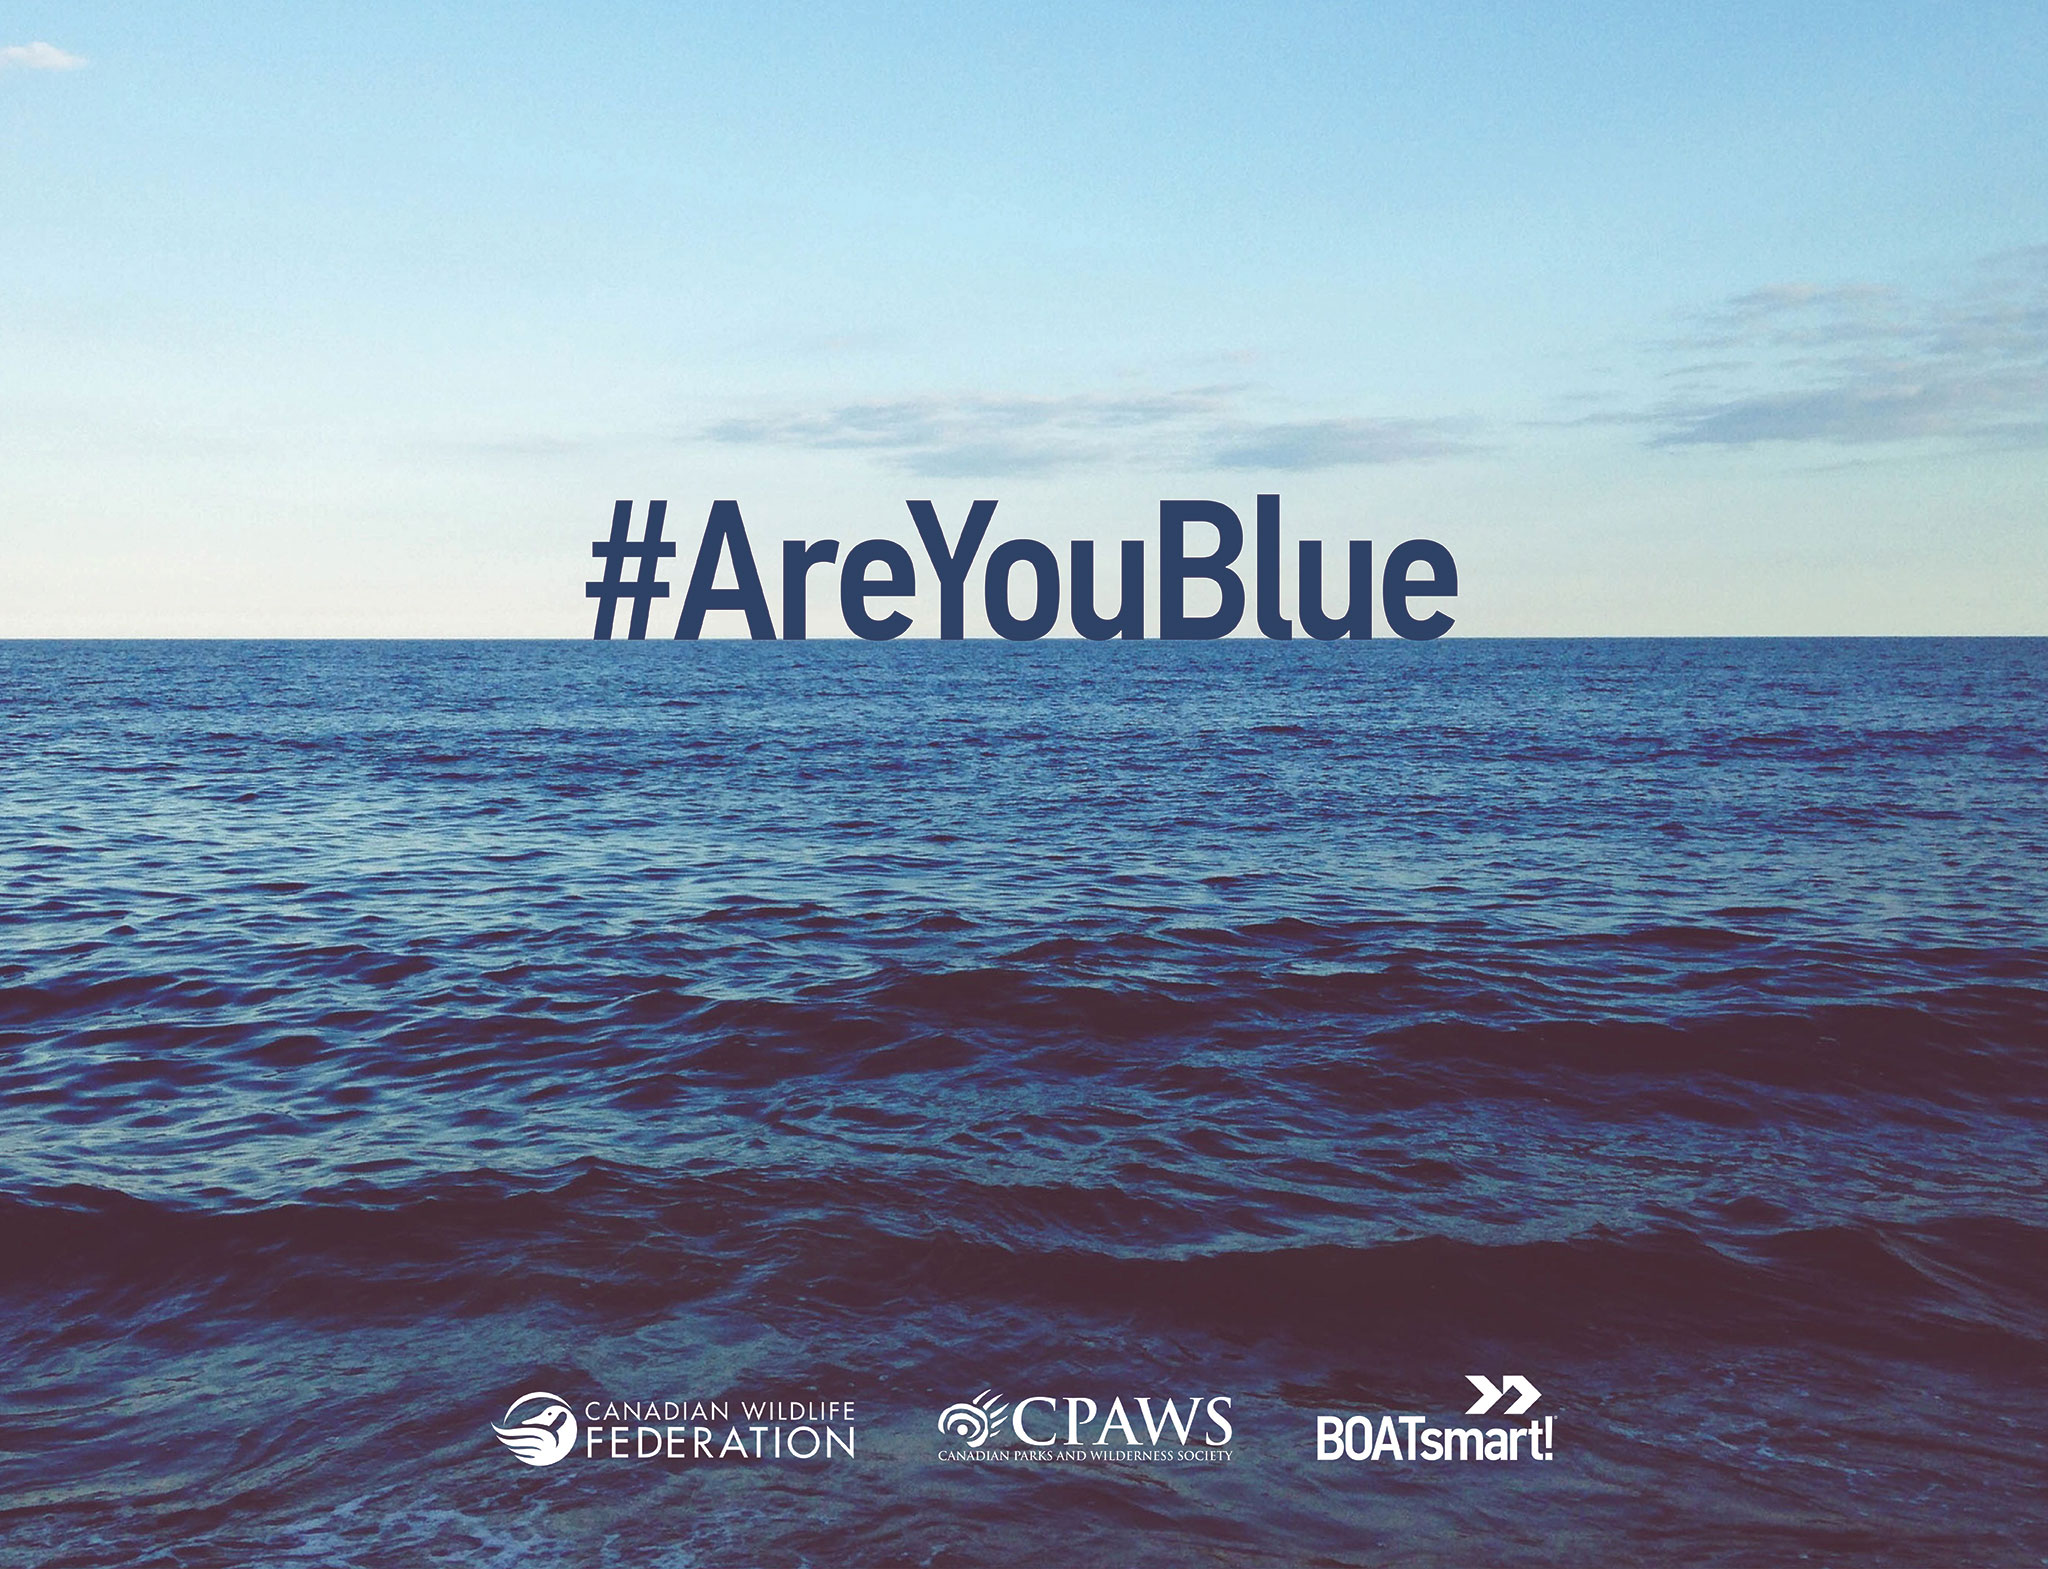 Are You Blue meme image